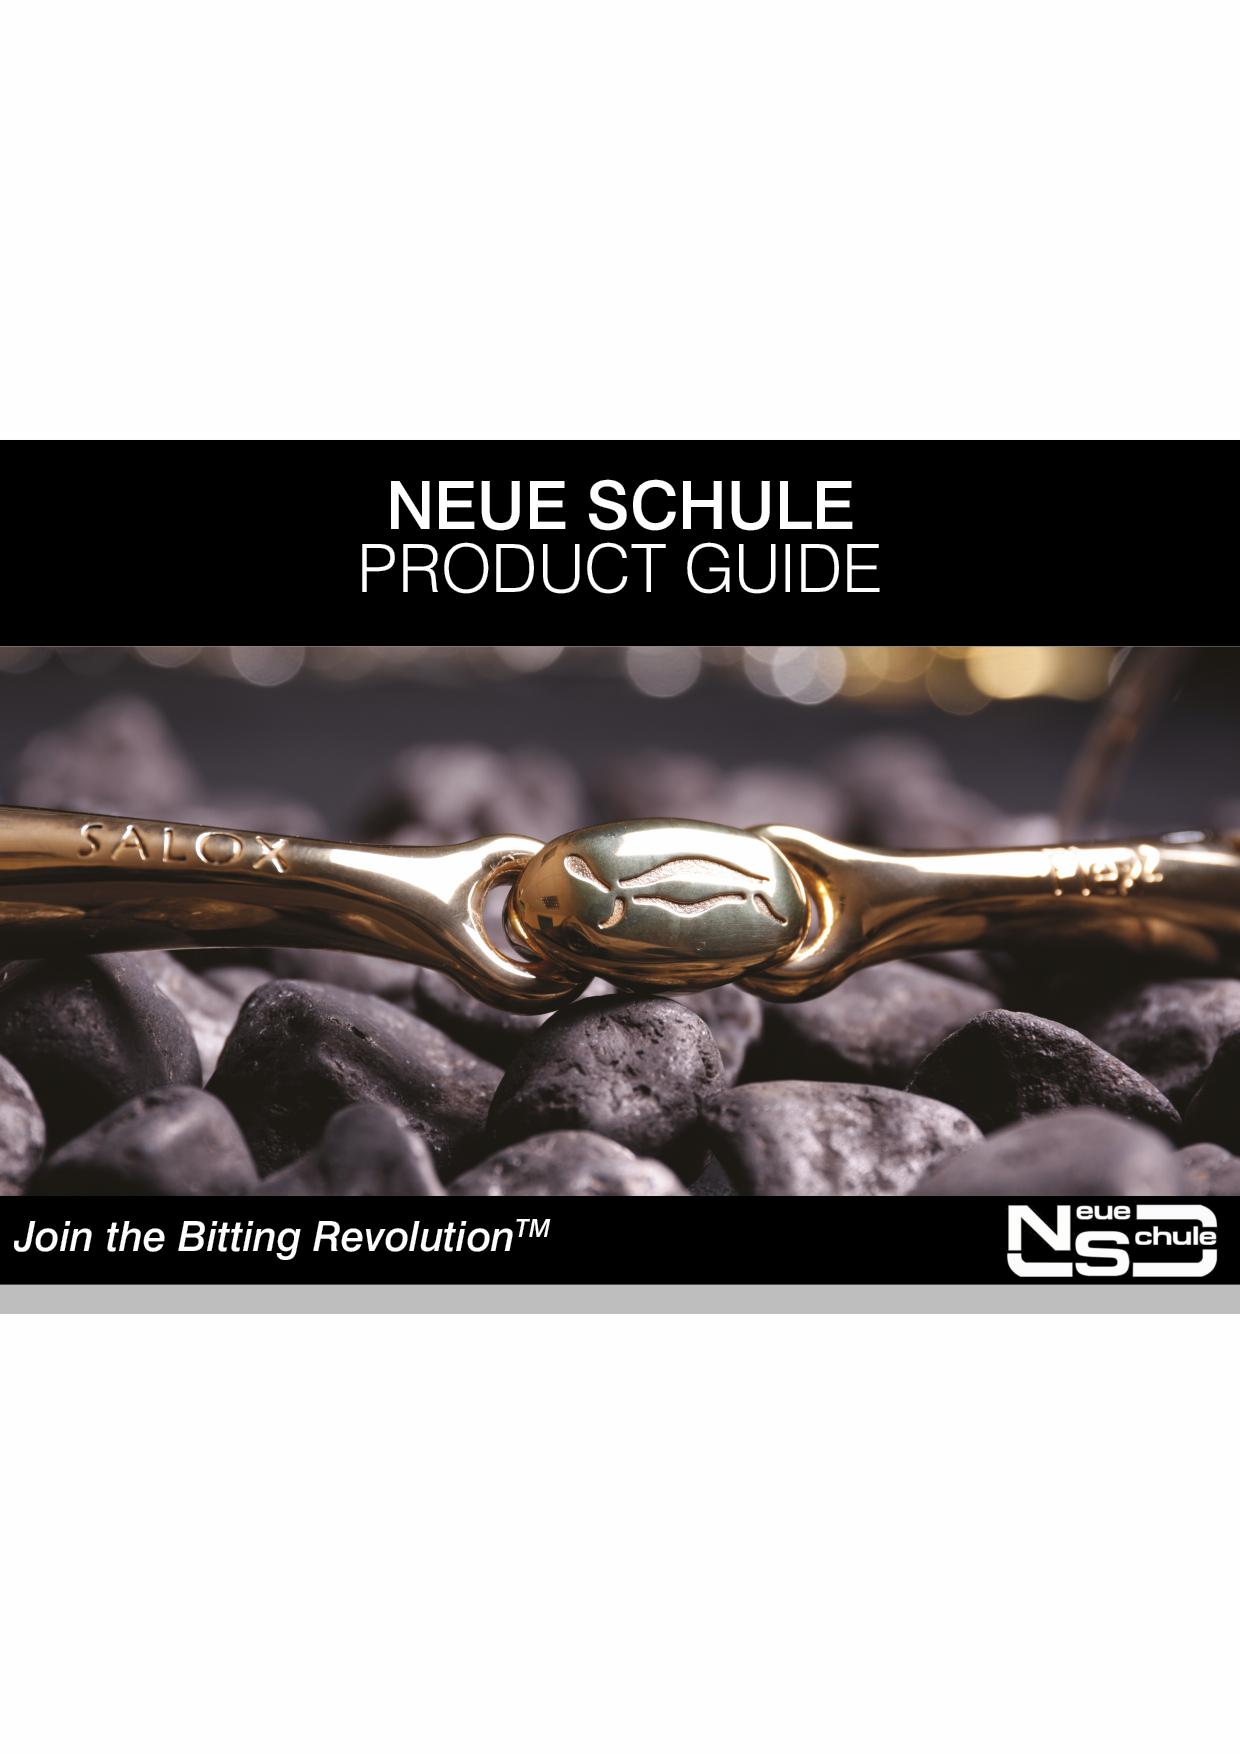 Neue Schule Product Guide